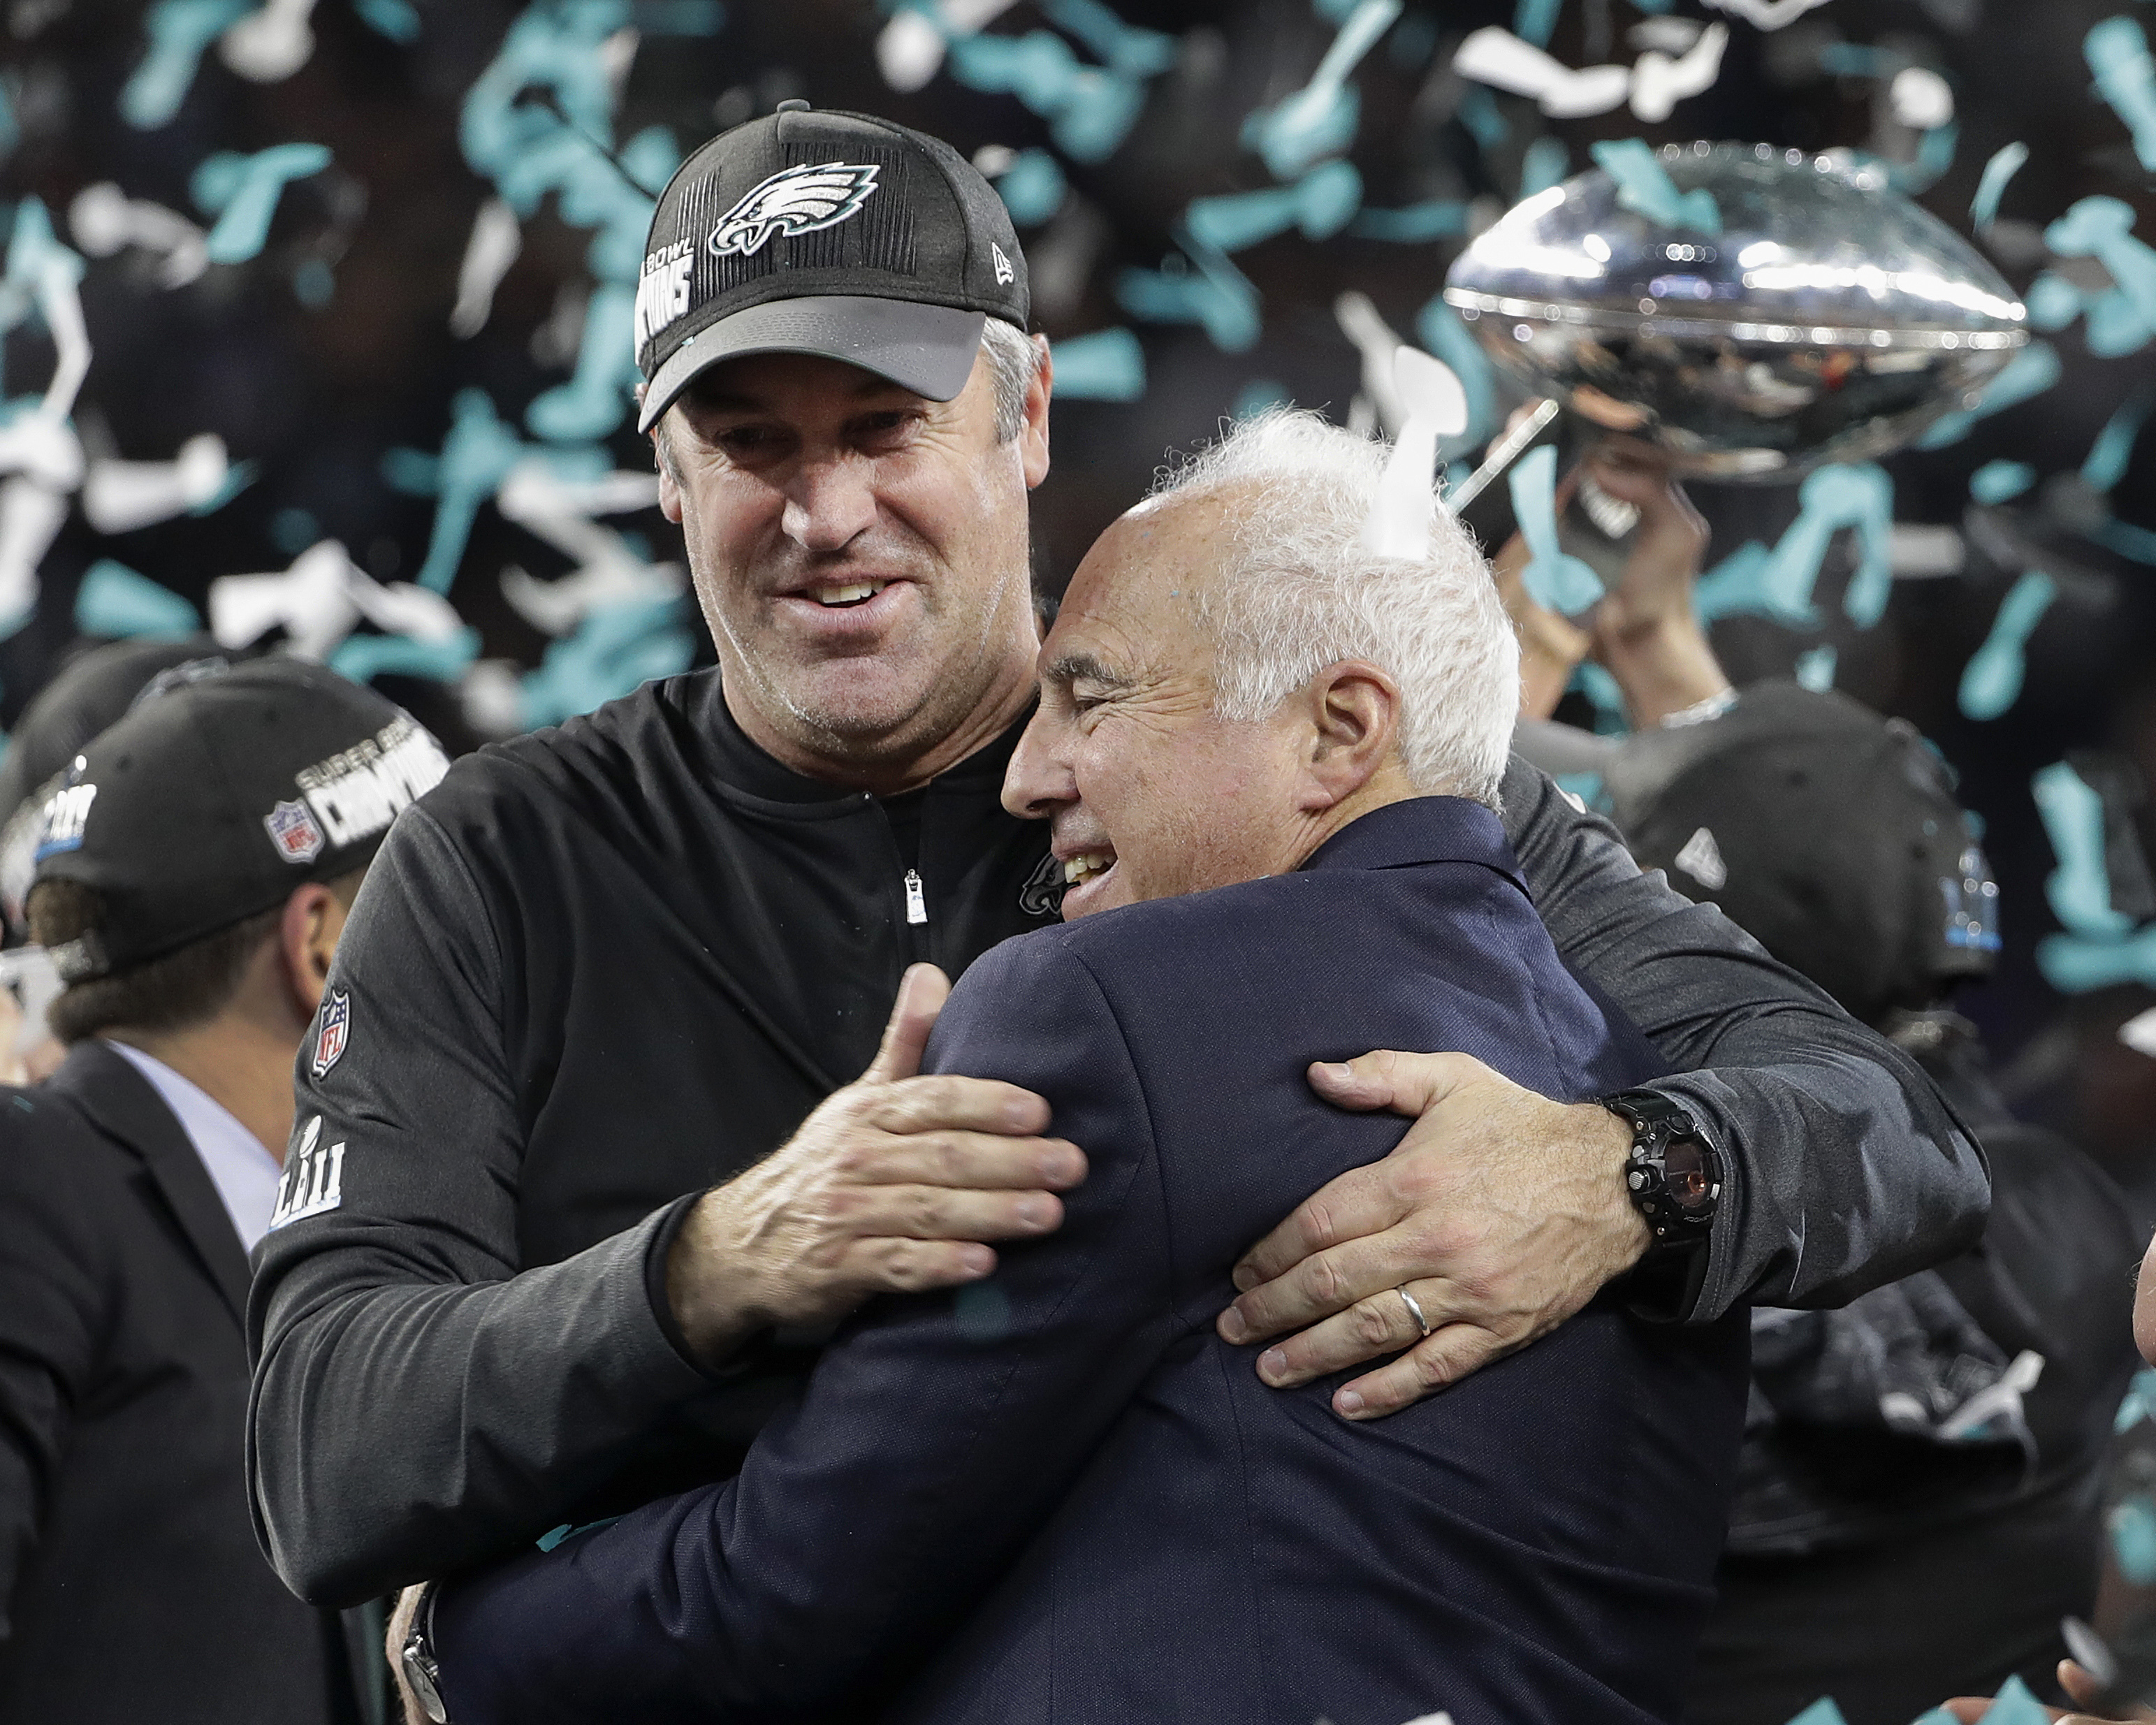 "<div class=""meta image-caption""><div class=""origin-logo origin-image ap""><span>AP</span></div><span class=""caption-text"">Philadelphia Eagles owner Jeffrey Lurie, right, and head coach Doug Pederson celebrate after the NFL Super Bowl 52 football game. (AP Photo/Chris O'Meara)</span></div>"